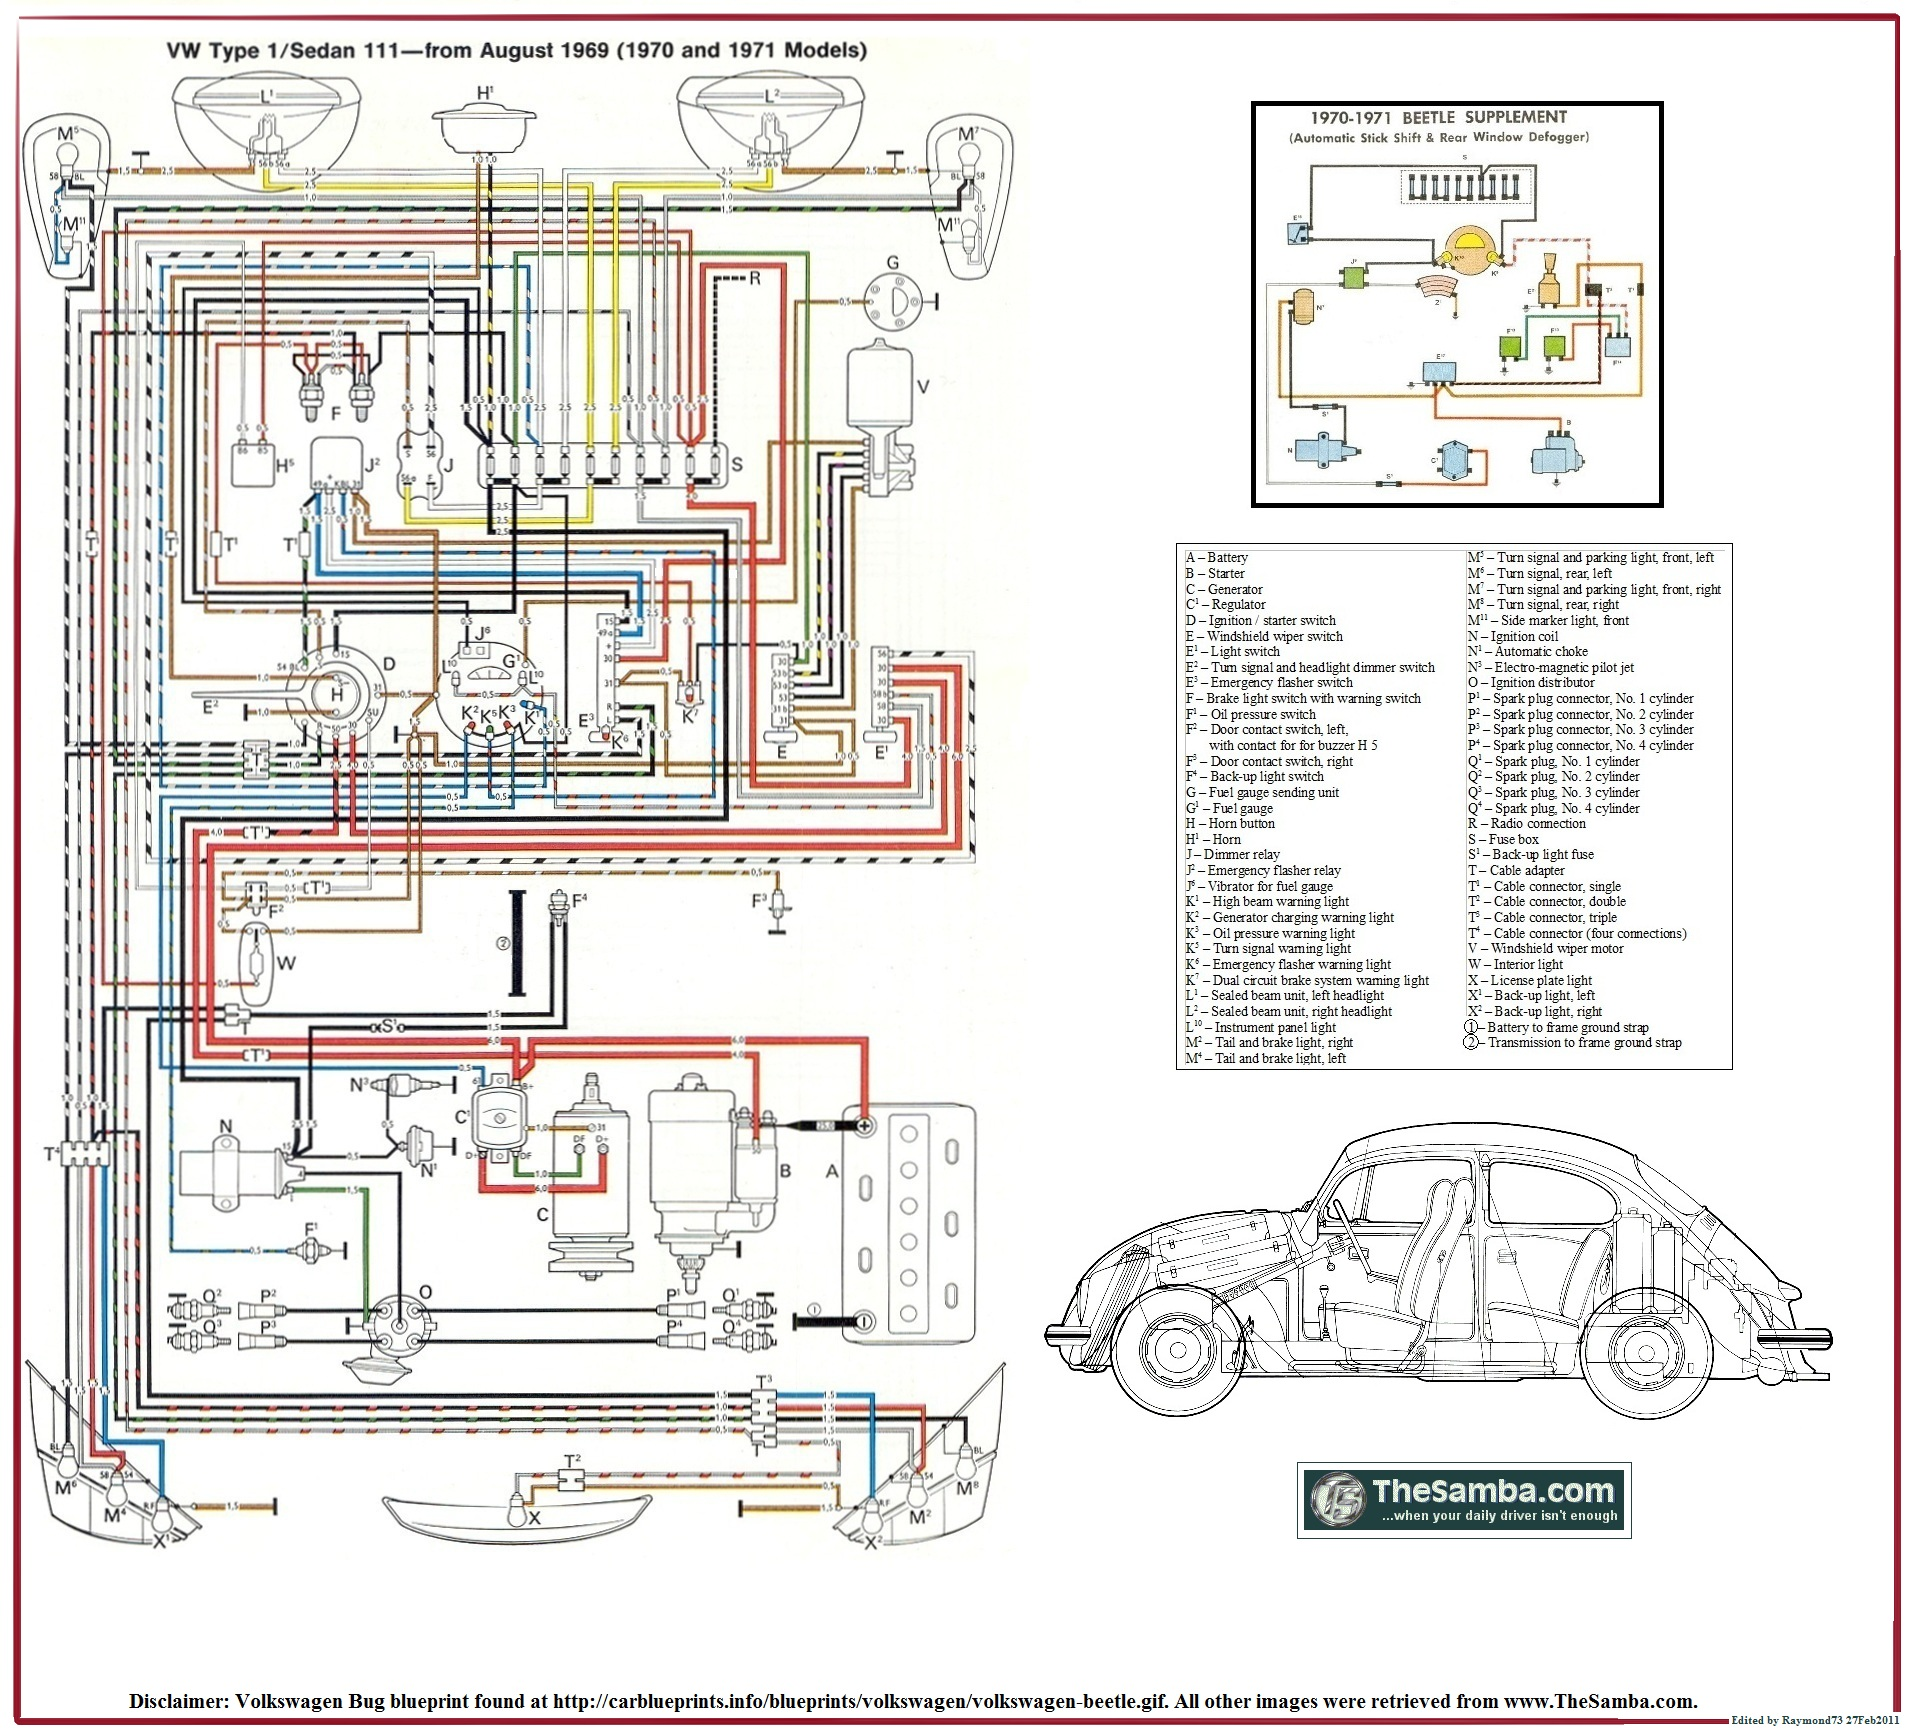 1970_VW_Type_1_Poster 1970 beetle wiring schematic yamaha motorcycle wiring diagrams new beetle wiring diagram at bayanpartner.co